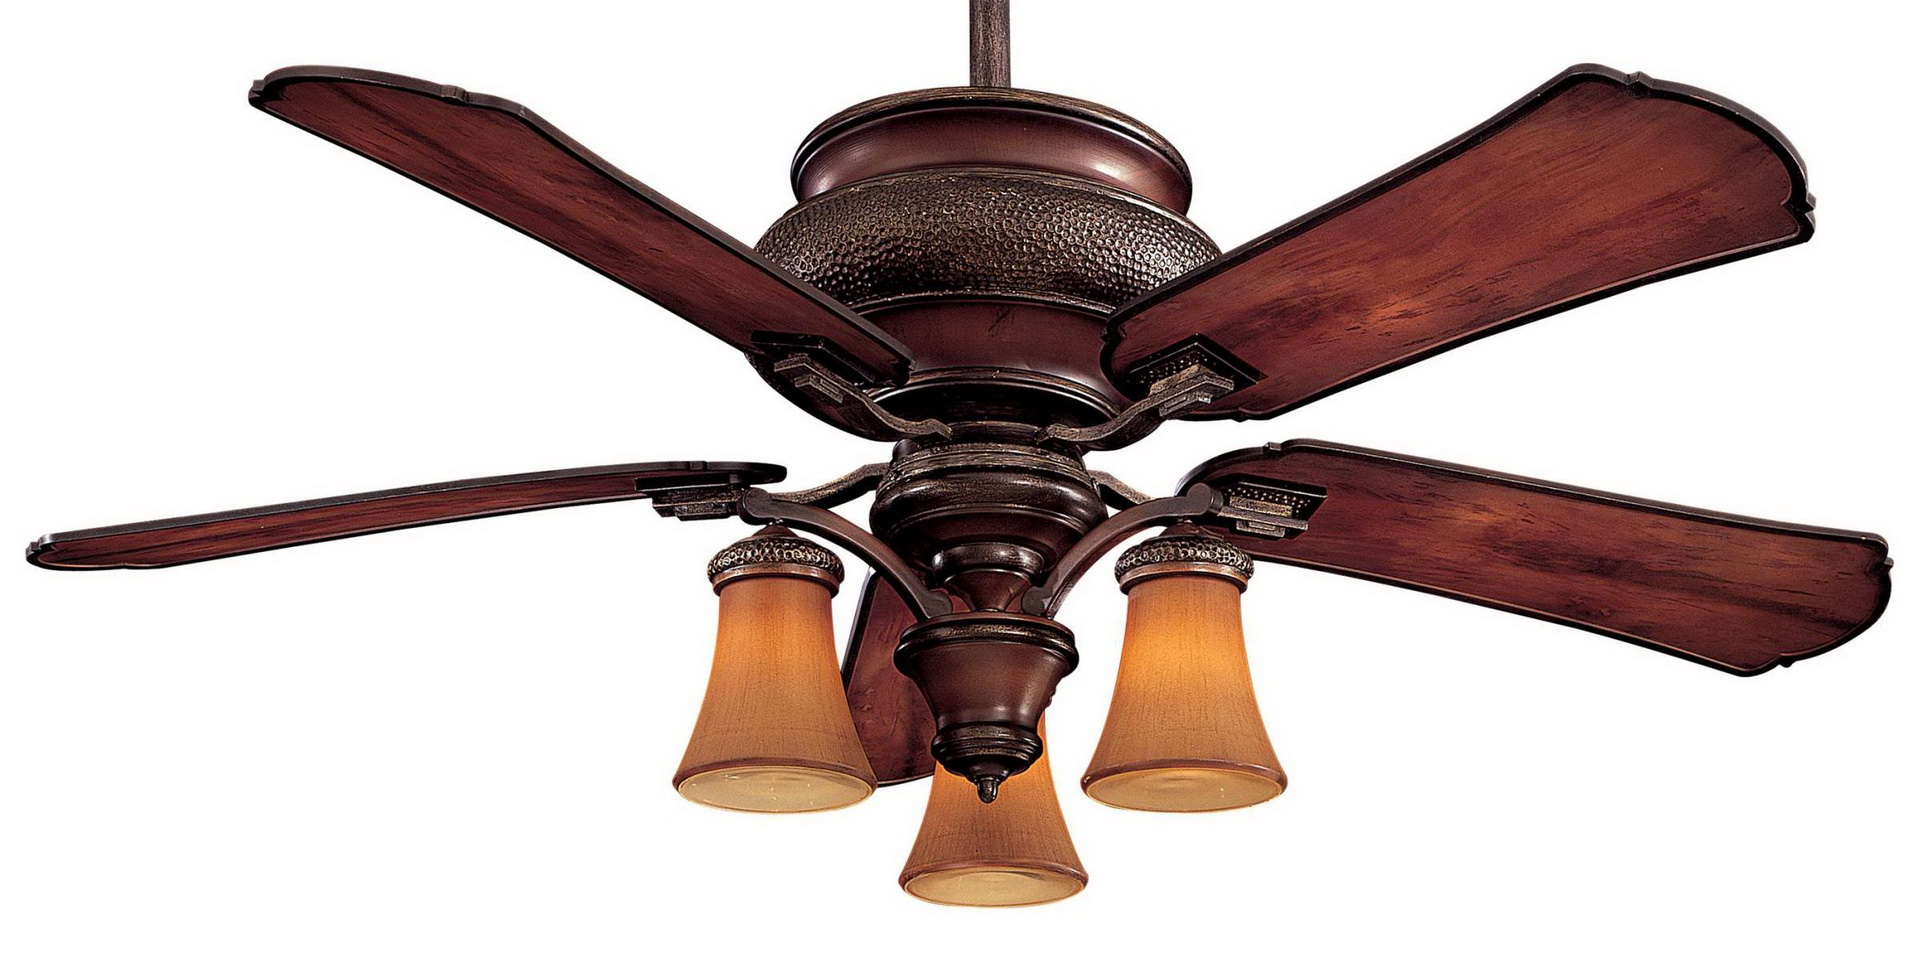 Texas star ceiling fan 12 ways of designs that will not affected 52 black harbor breeze energy star ceiling fan texas roadhouse in middletown nj aloadofball Image collections